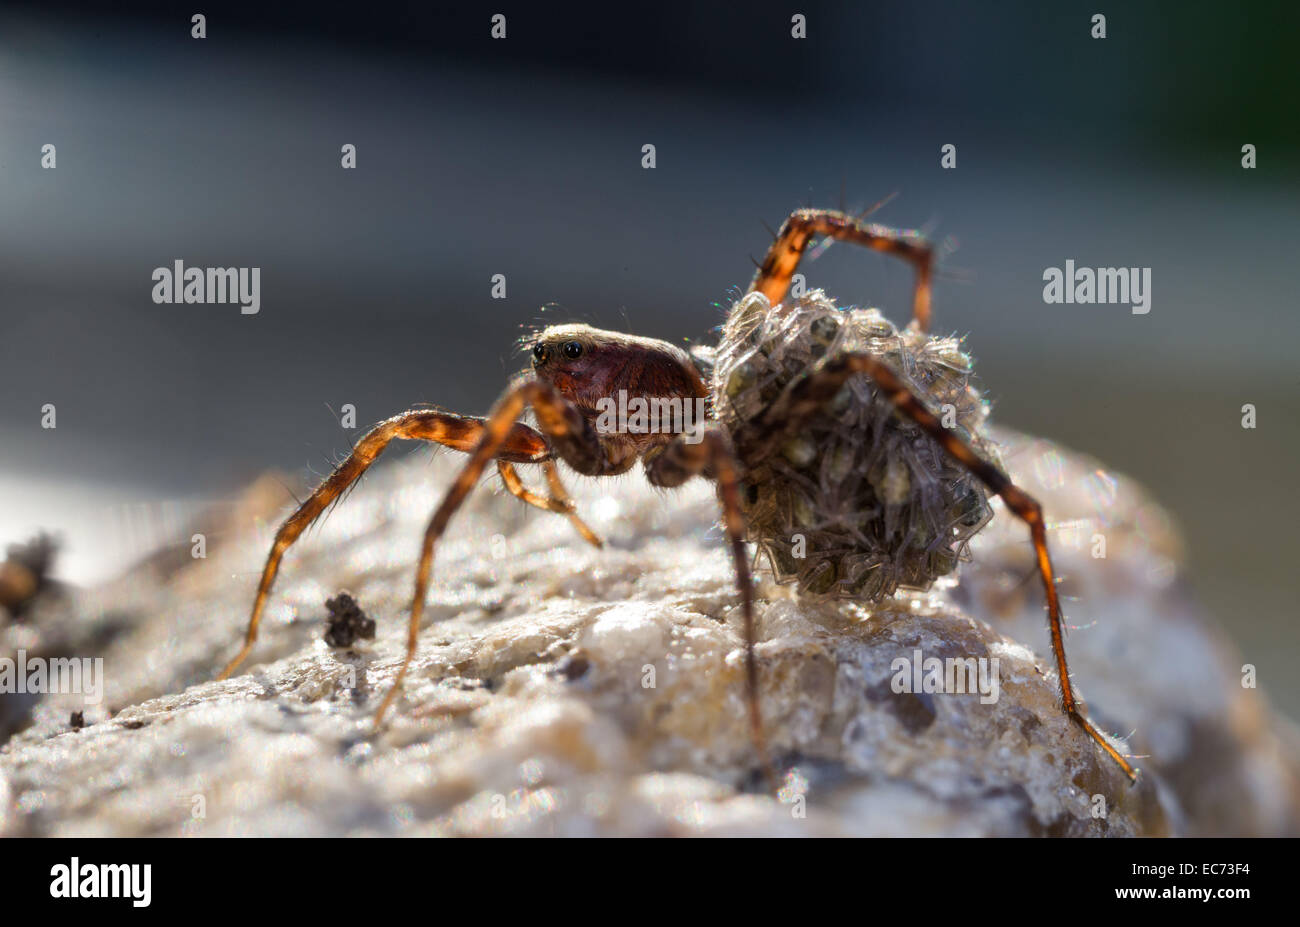 Spider with spiderlings - Stock Image